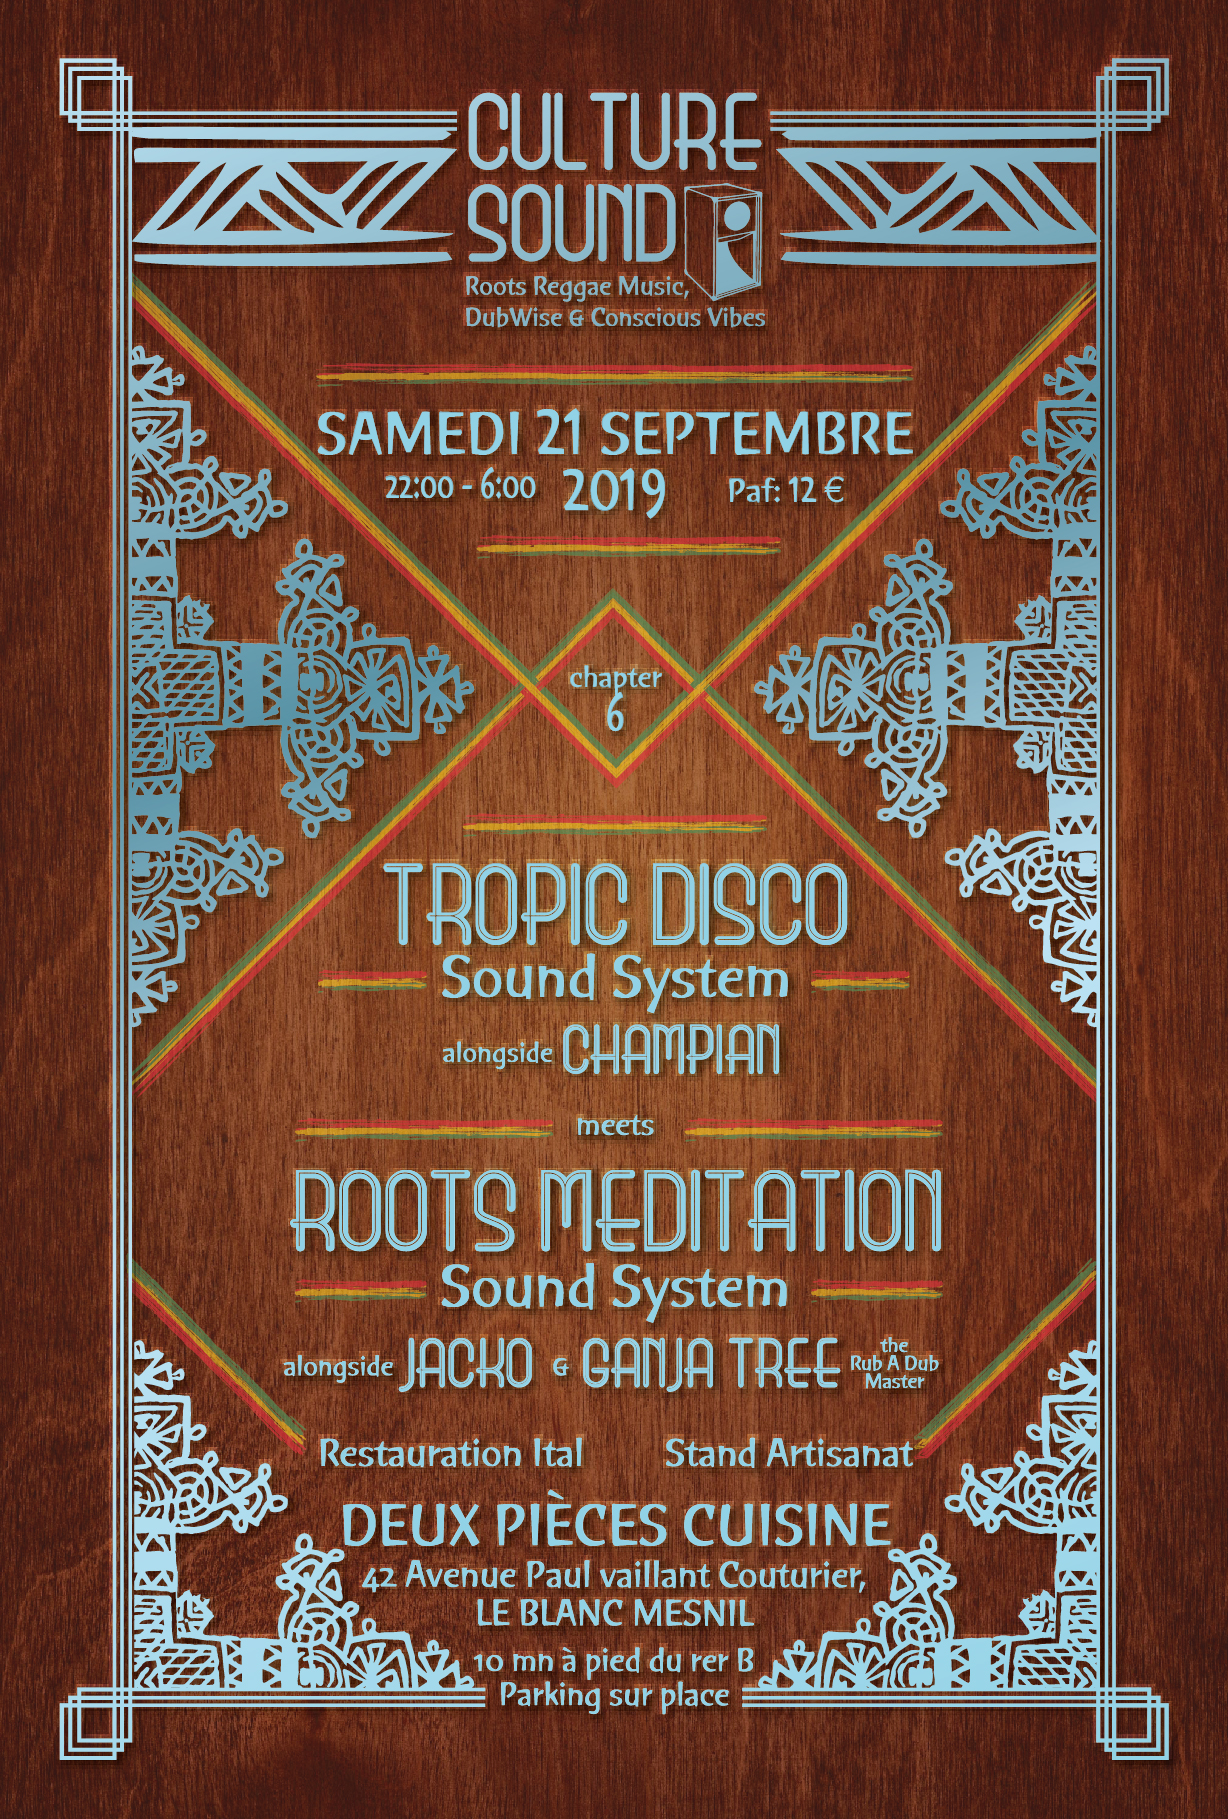 Paris Dub Session #2 – Glazart (75) – 27 Septembre 2014